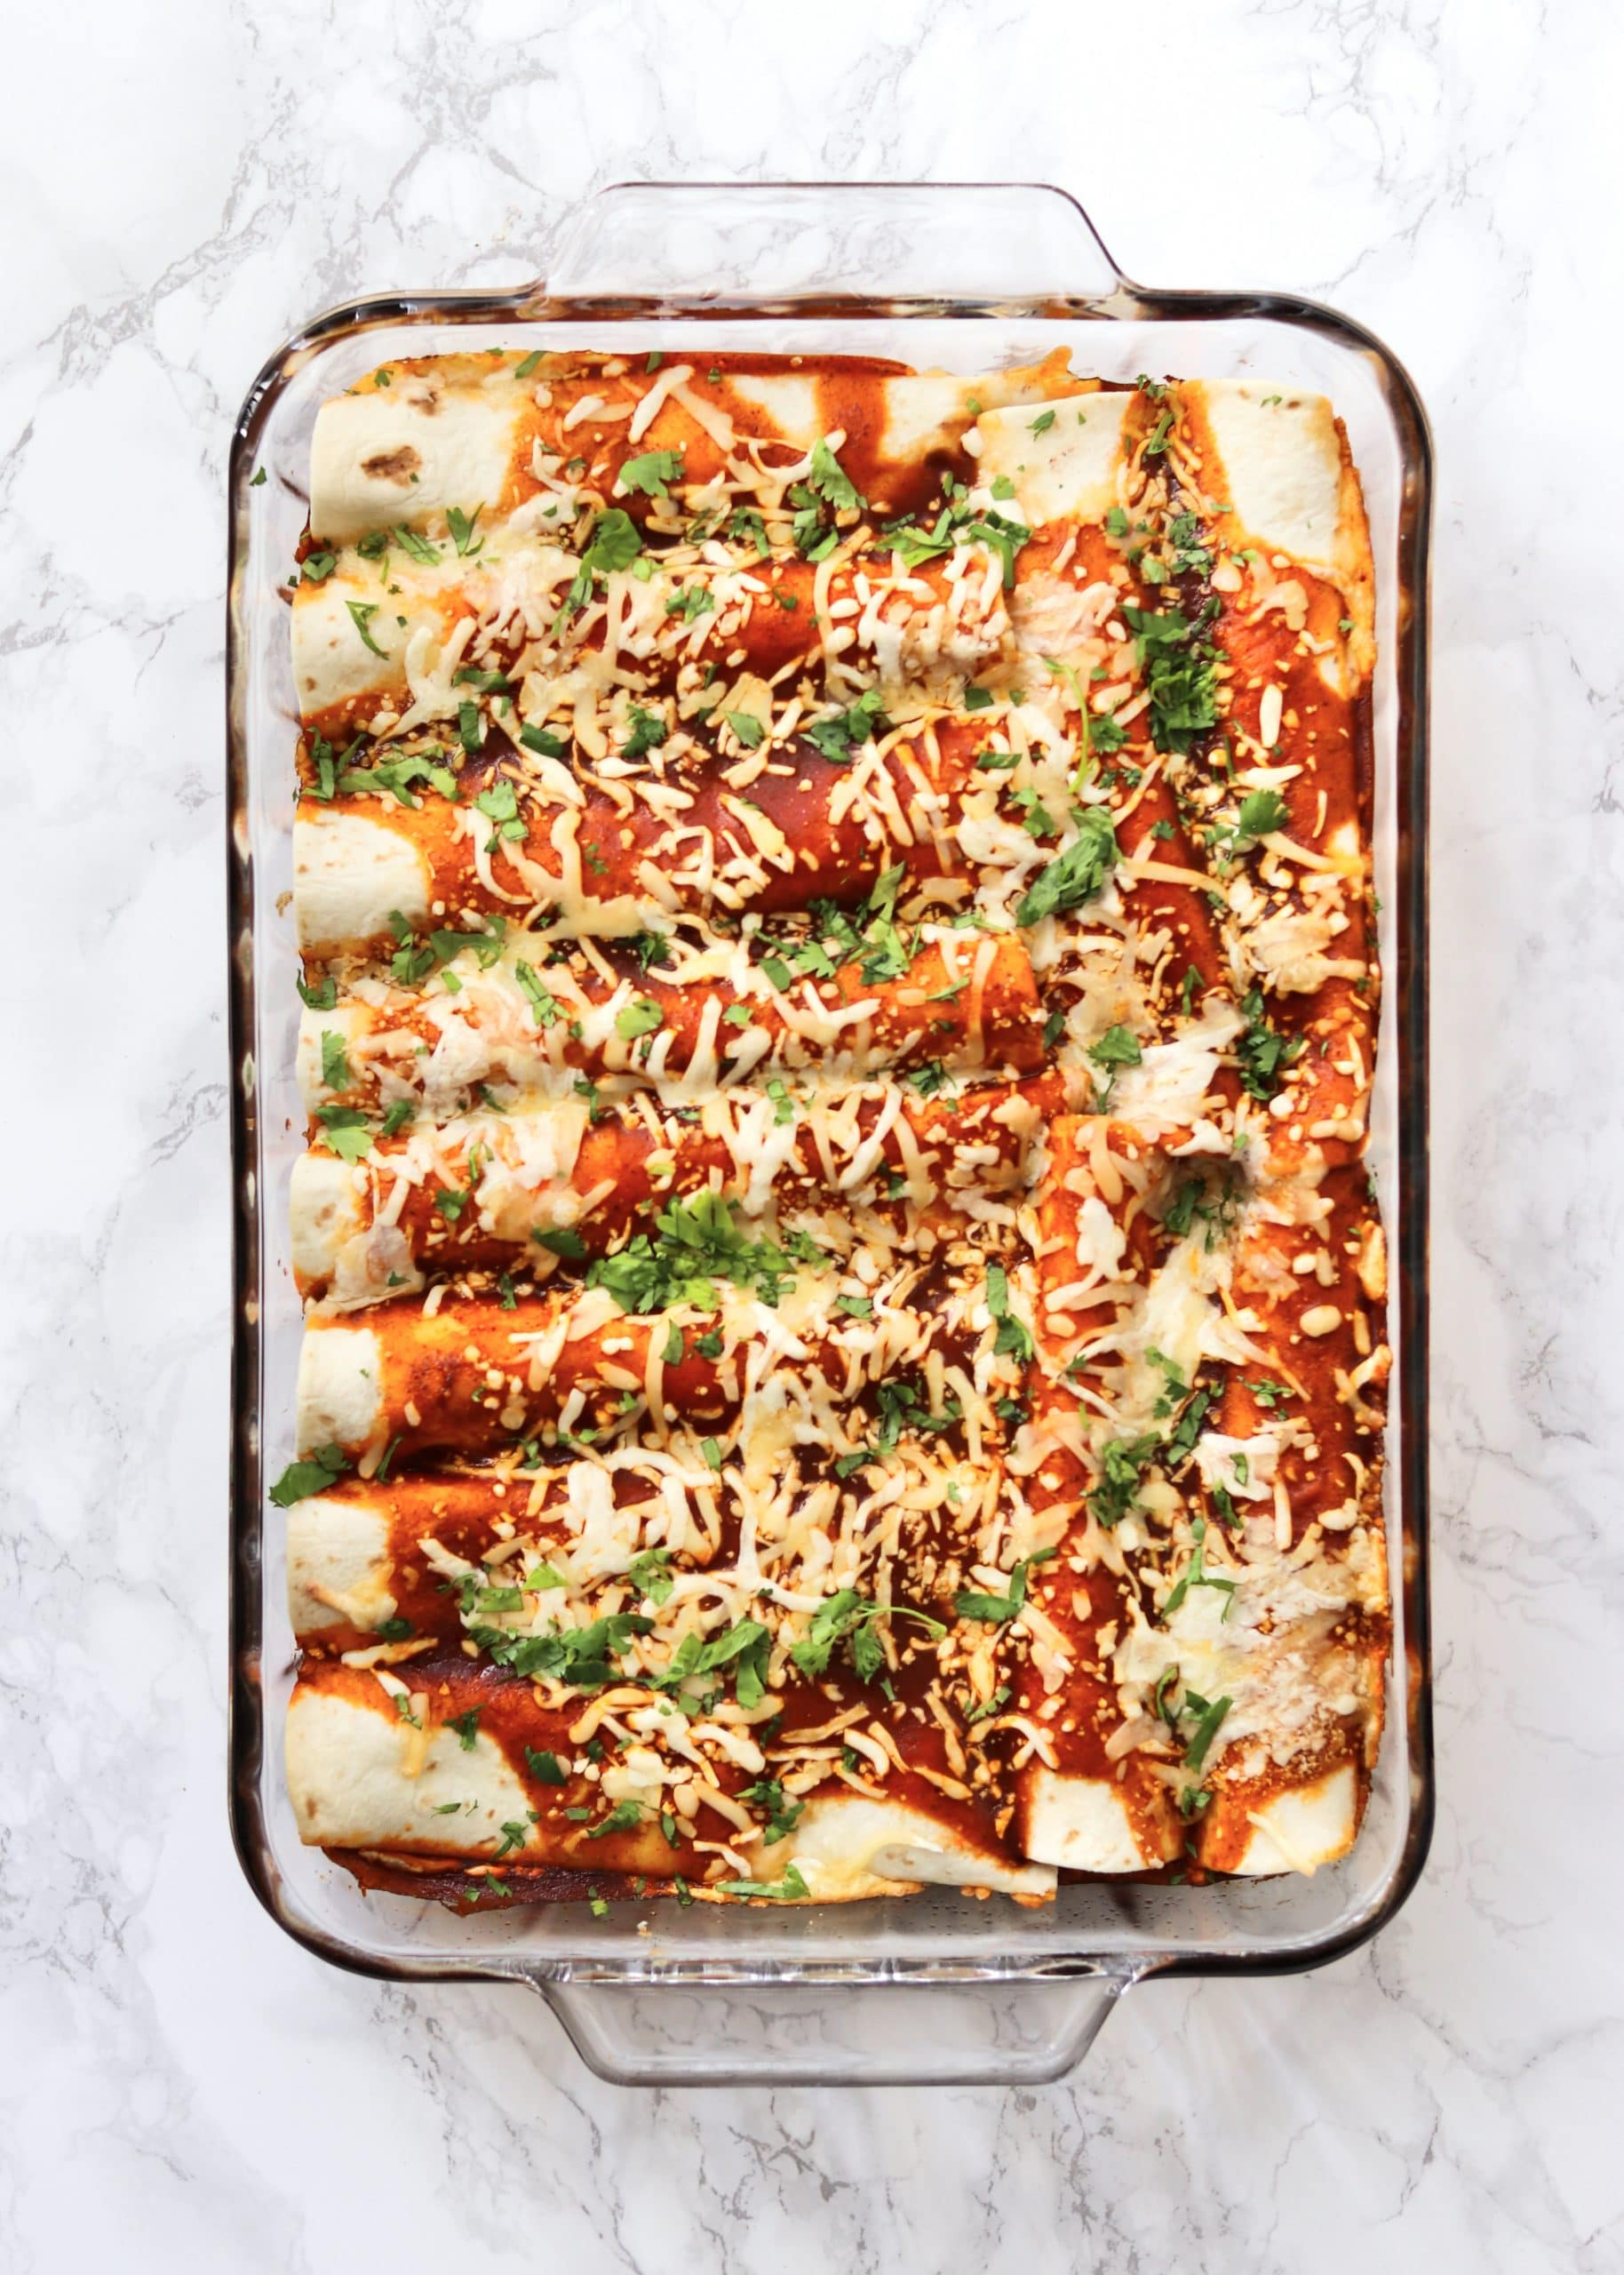 Baked cheesy vegetarian enchiladas in glass dish